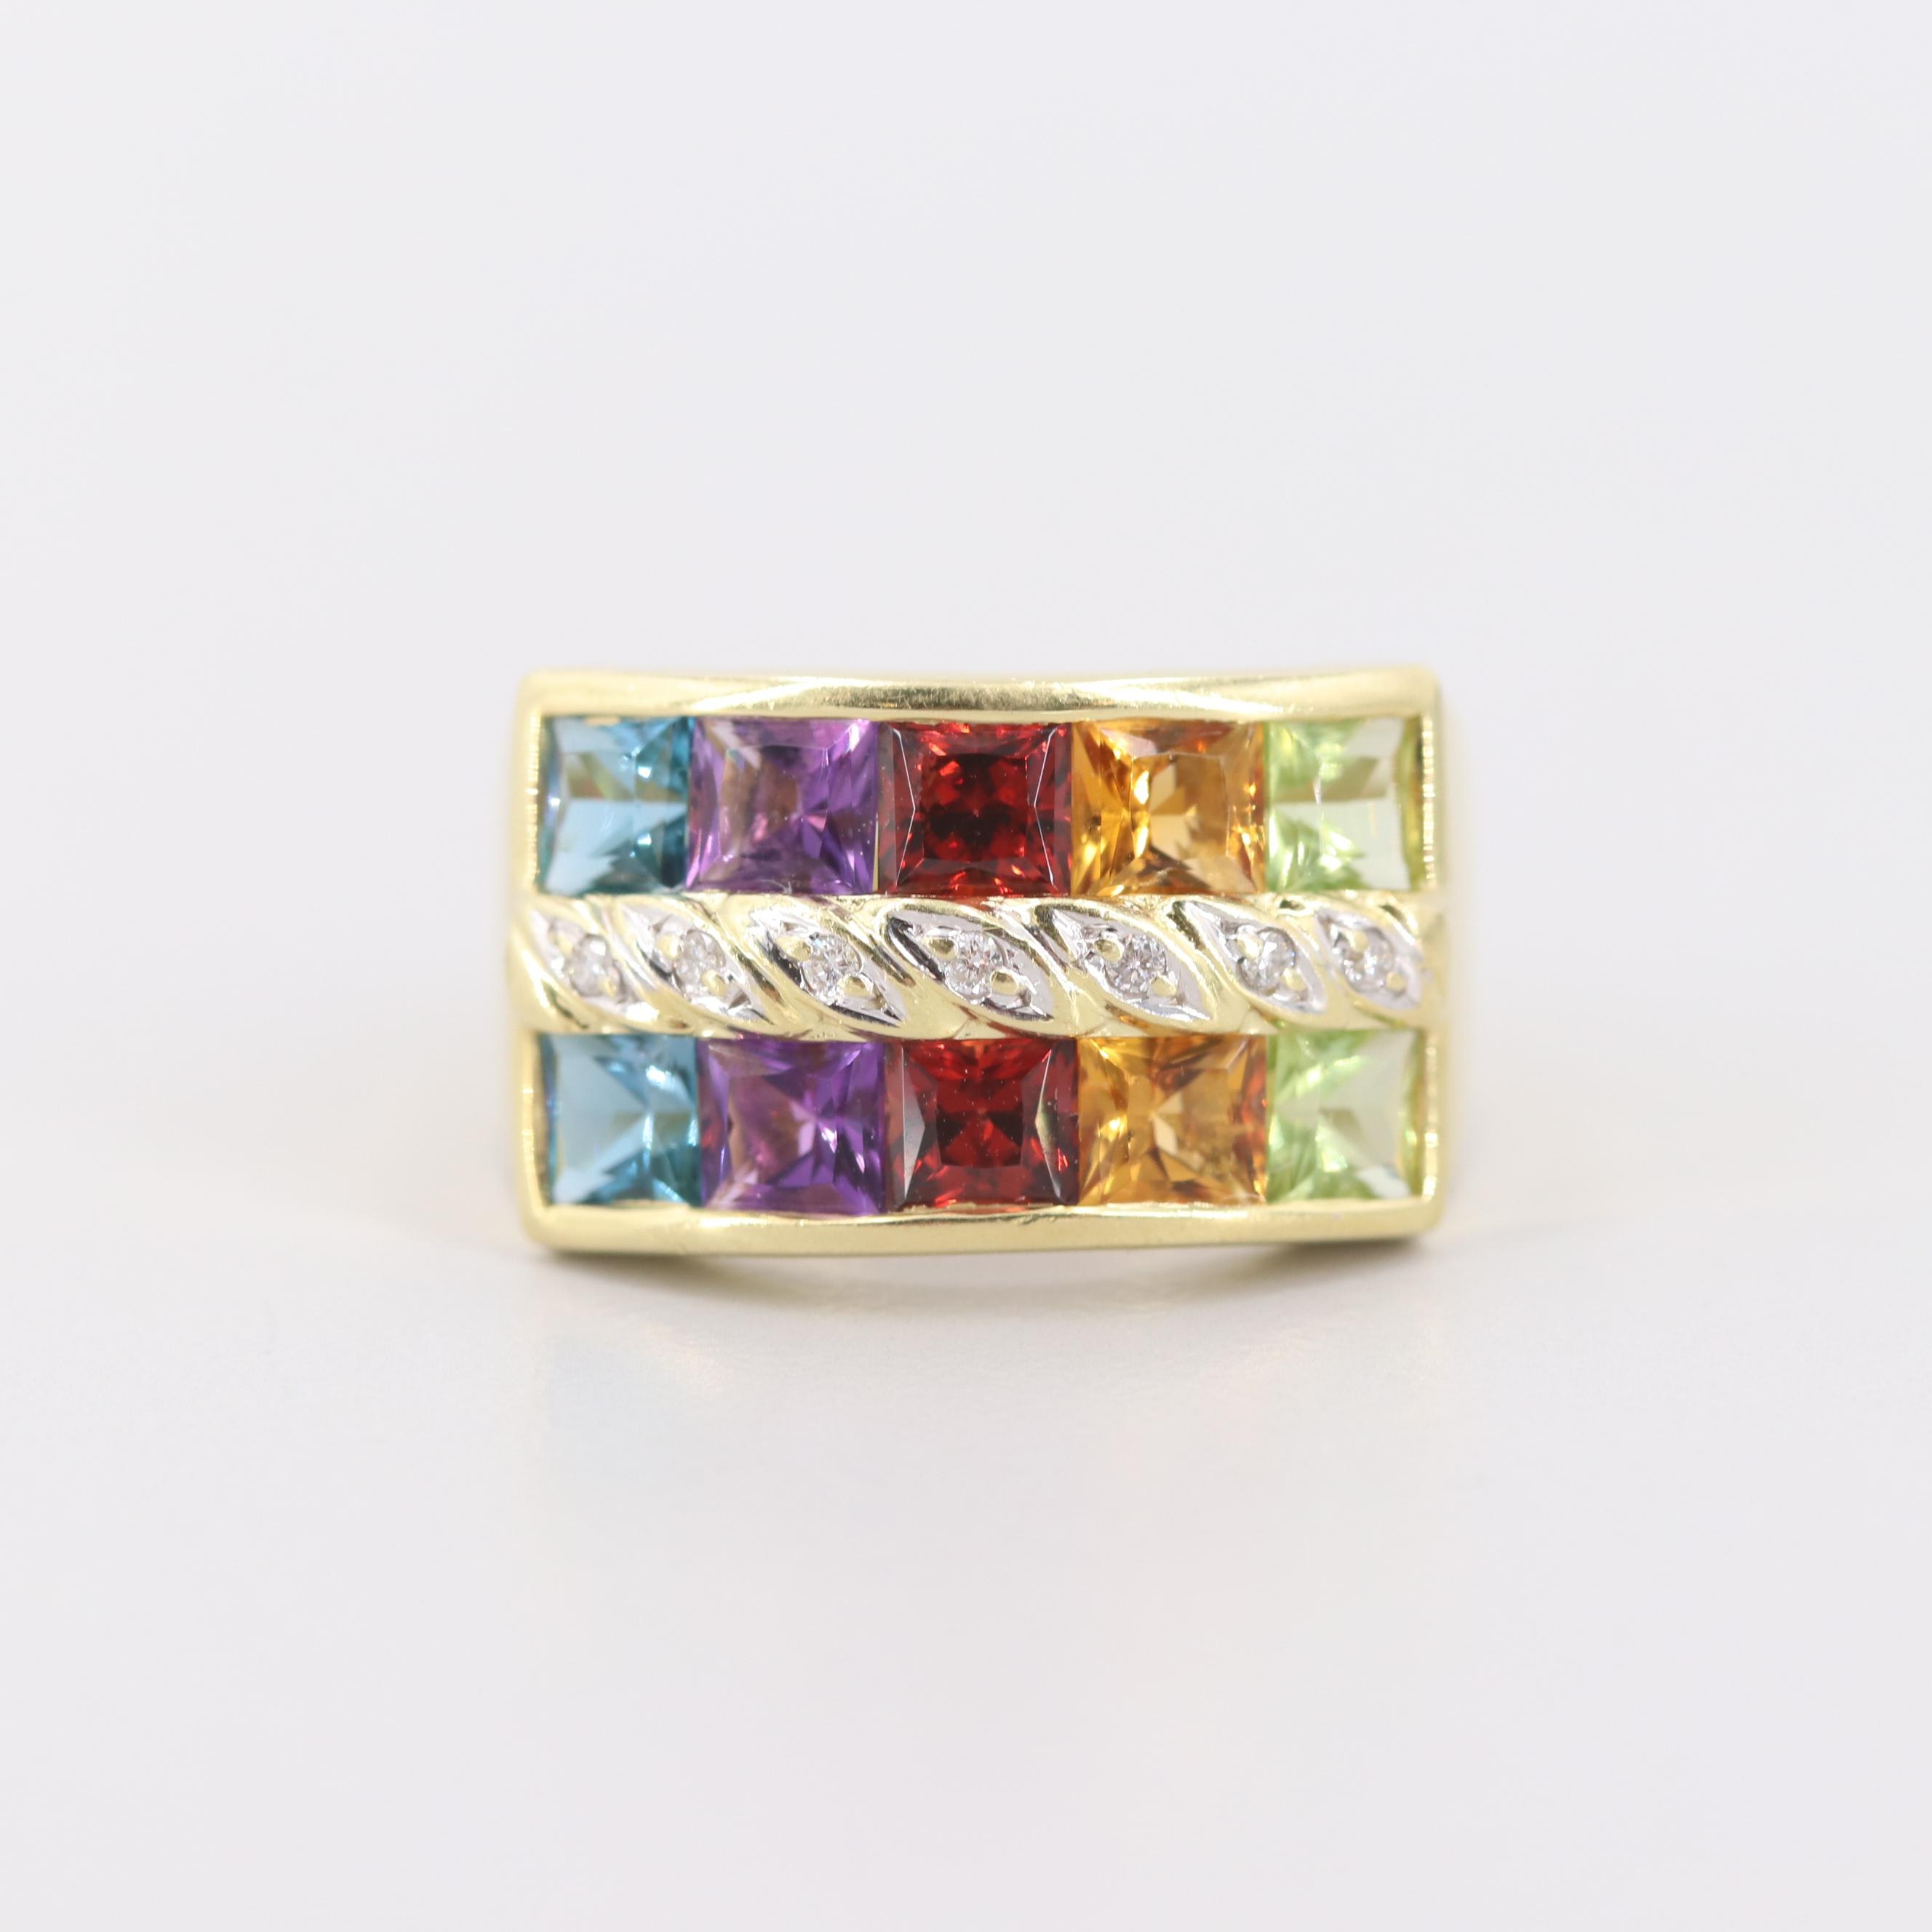 Vintage H. Stern 18K Yellow Gold Ring Including Diamond, Amethyst and Garnet